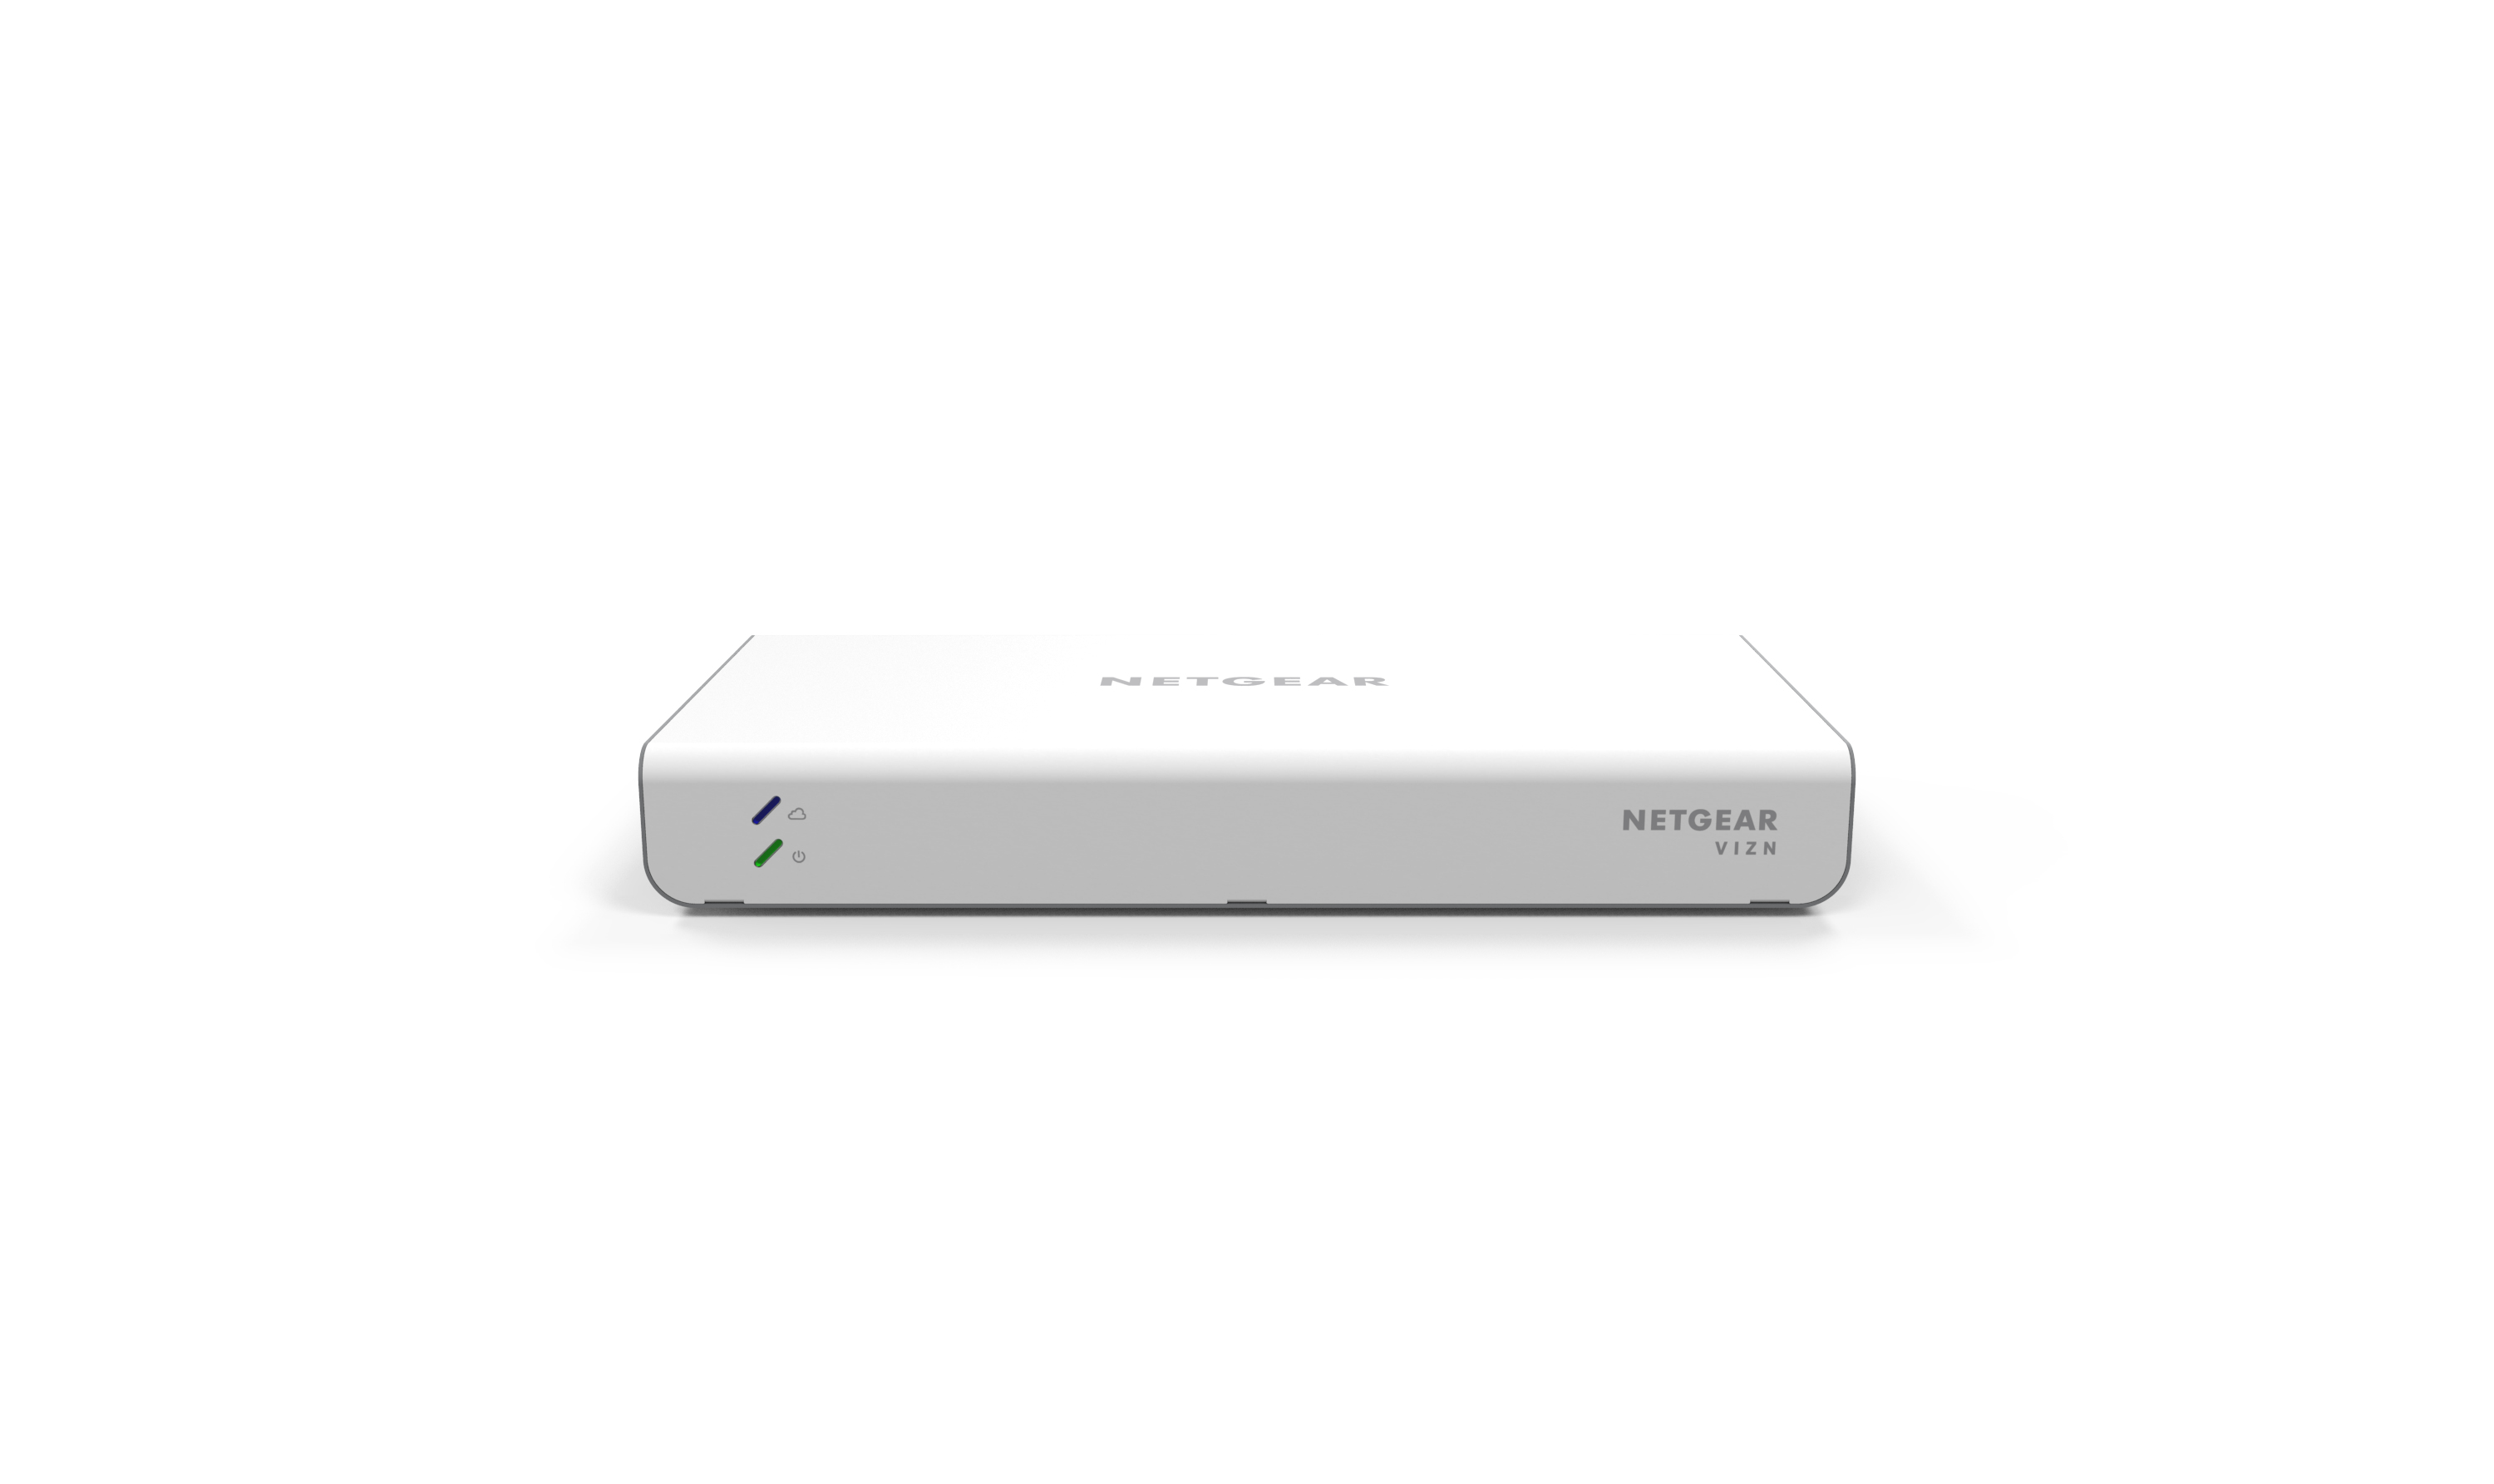 Netgear INSIGHT APP 1G-10 CLOUD Switch 2xSFP (GC110)